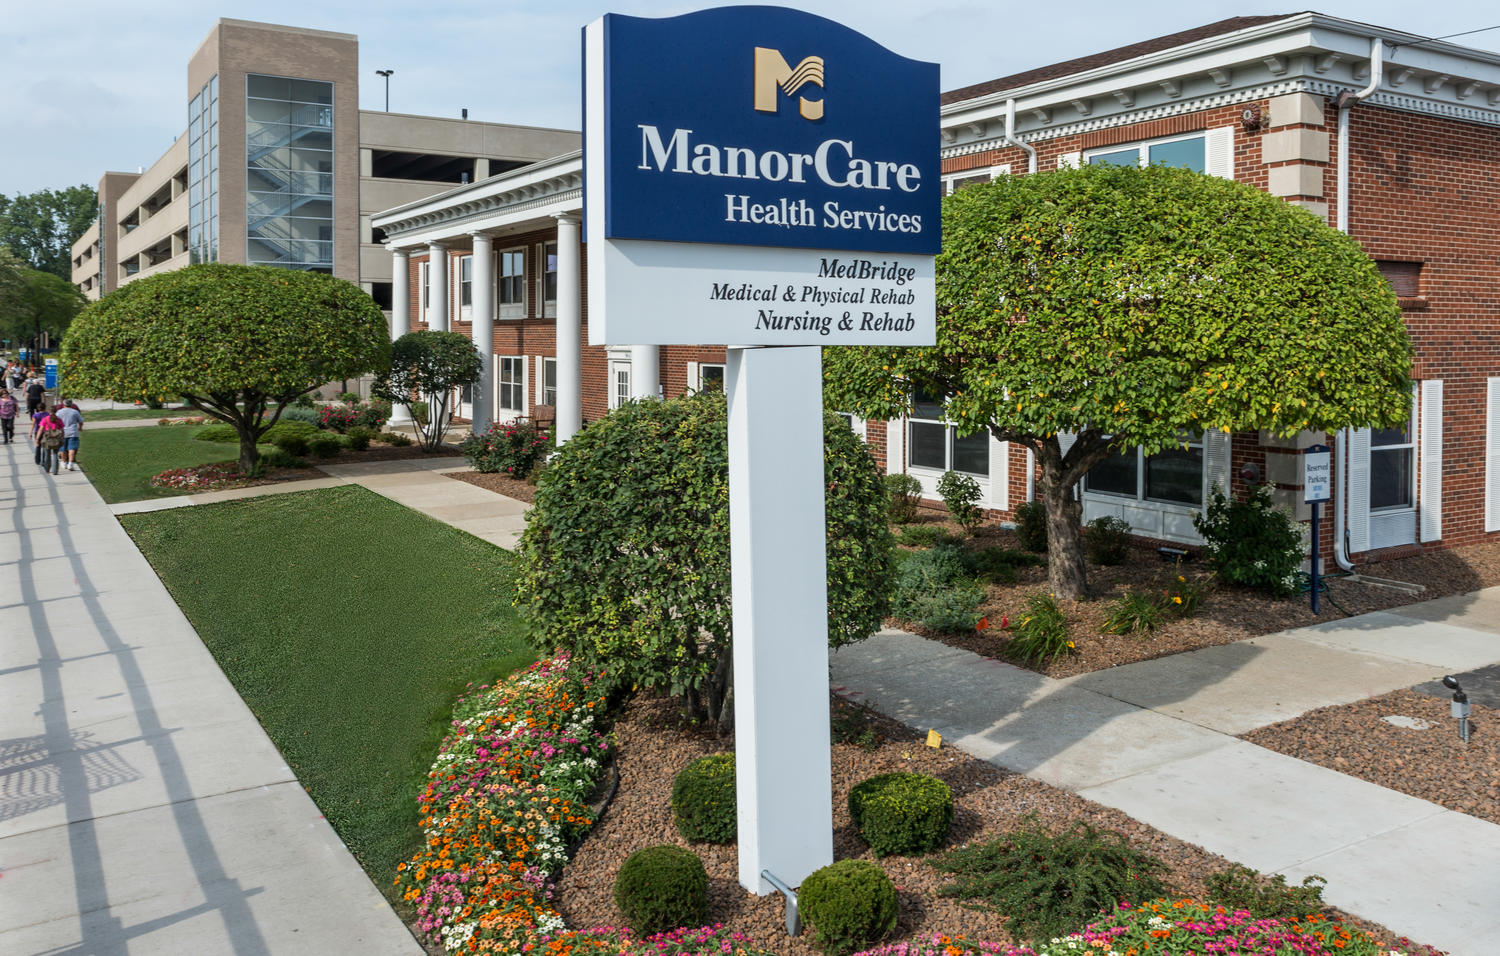 Best Manorcare Health Services Oak Large 001 Welcome To Manorcare Health 1500X957 72Dpi